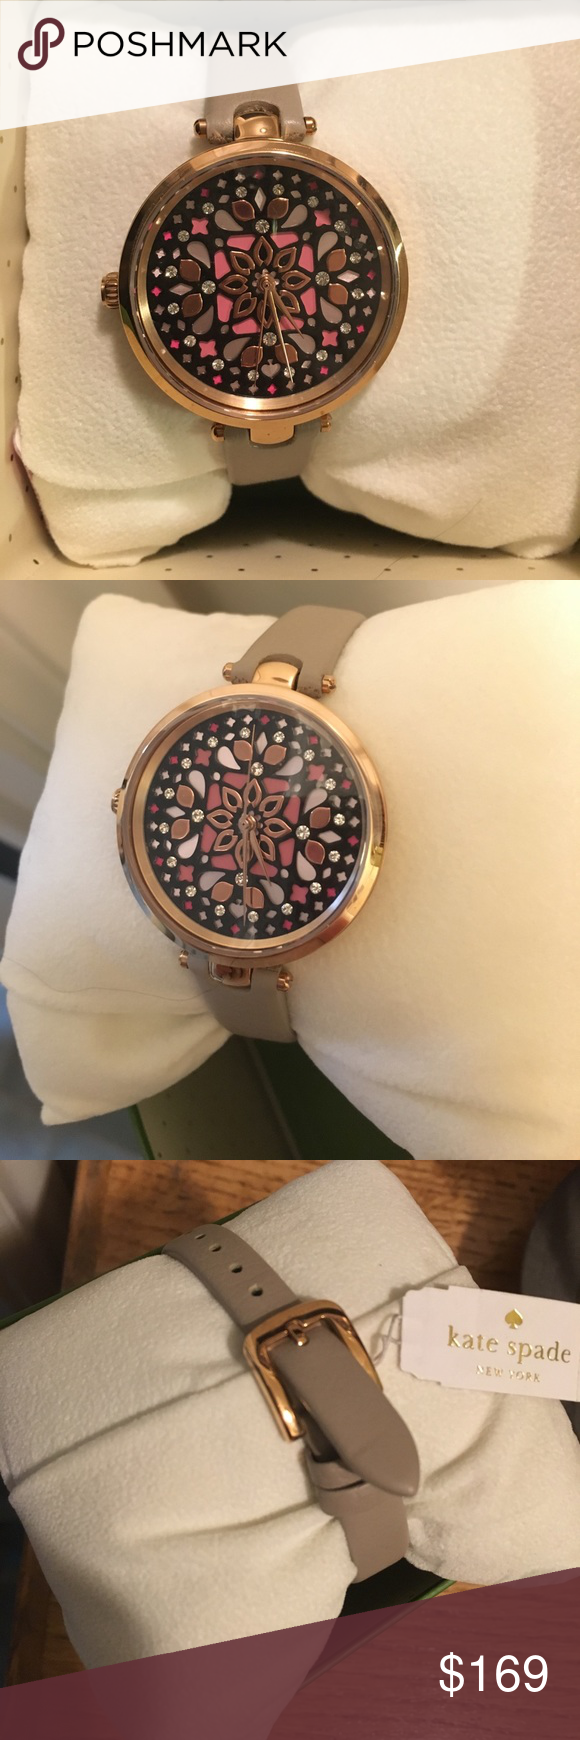 Kate Spade leather buckle watch ksw1260 NIBWT New in box with tags attached! Kate Spade Holland clock tower gray watch with leather straps. Buckle closure with rose gold hardware. Round rose gold case. Mosaic pattern on face. Case size: 34mm. Style # ksw1260. Open to reasonable offers; NO trades! kate spade Accessories Watches